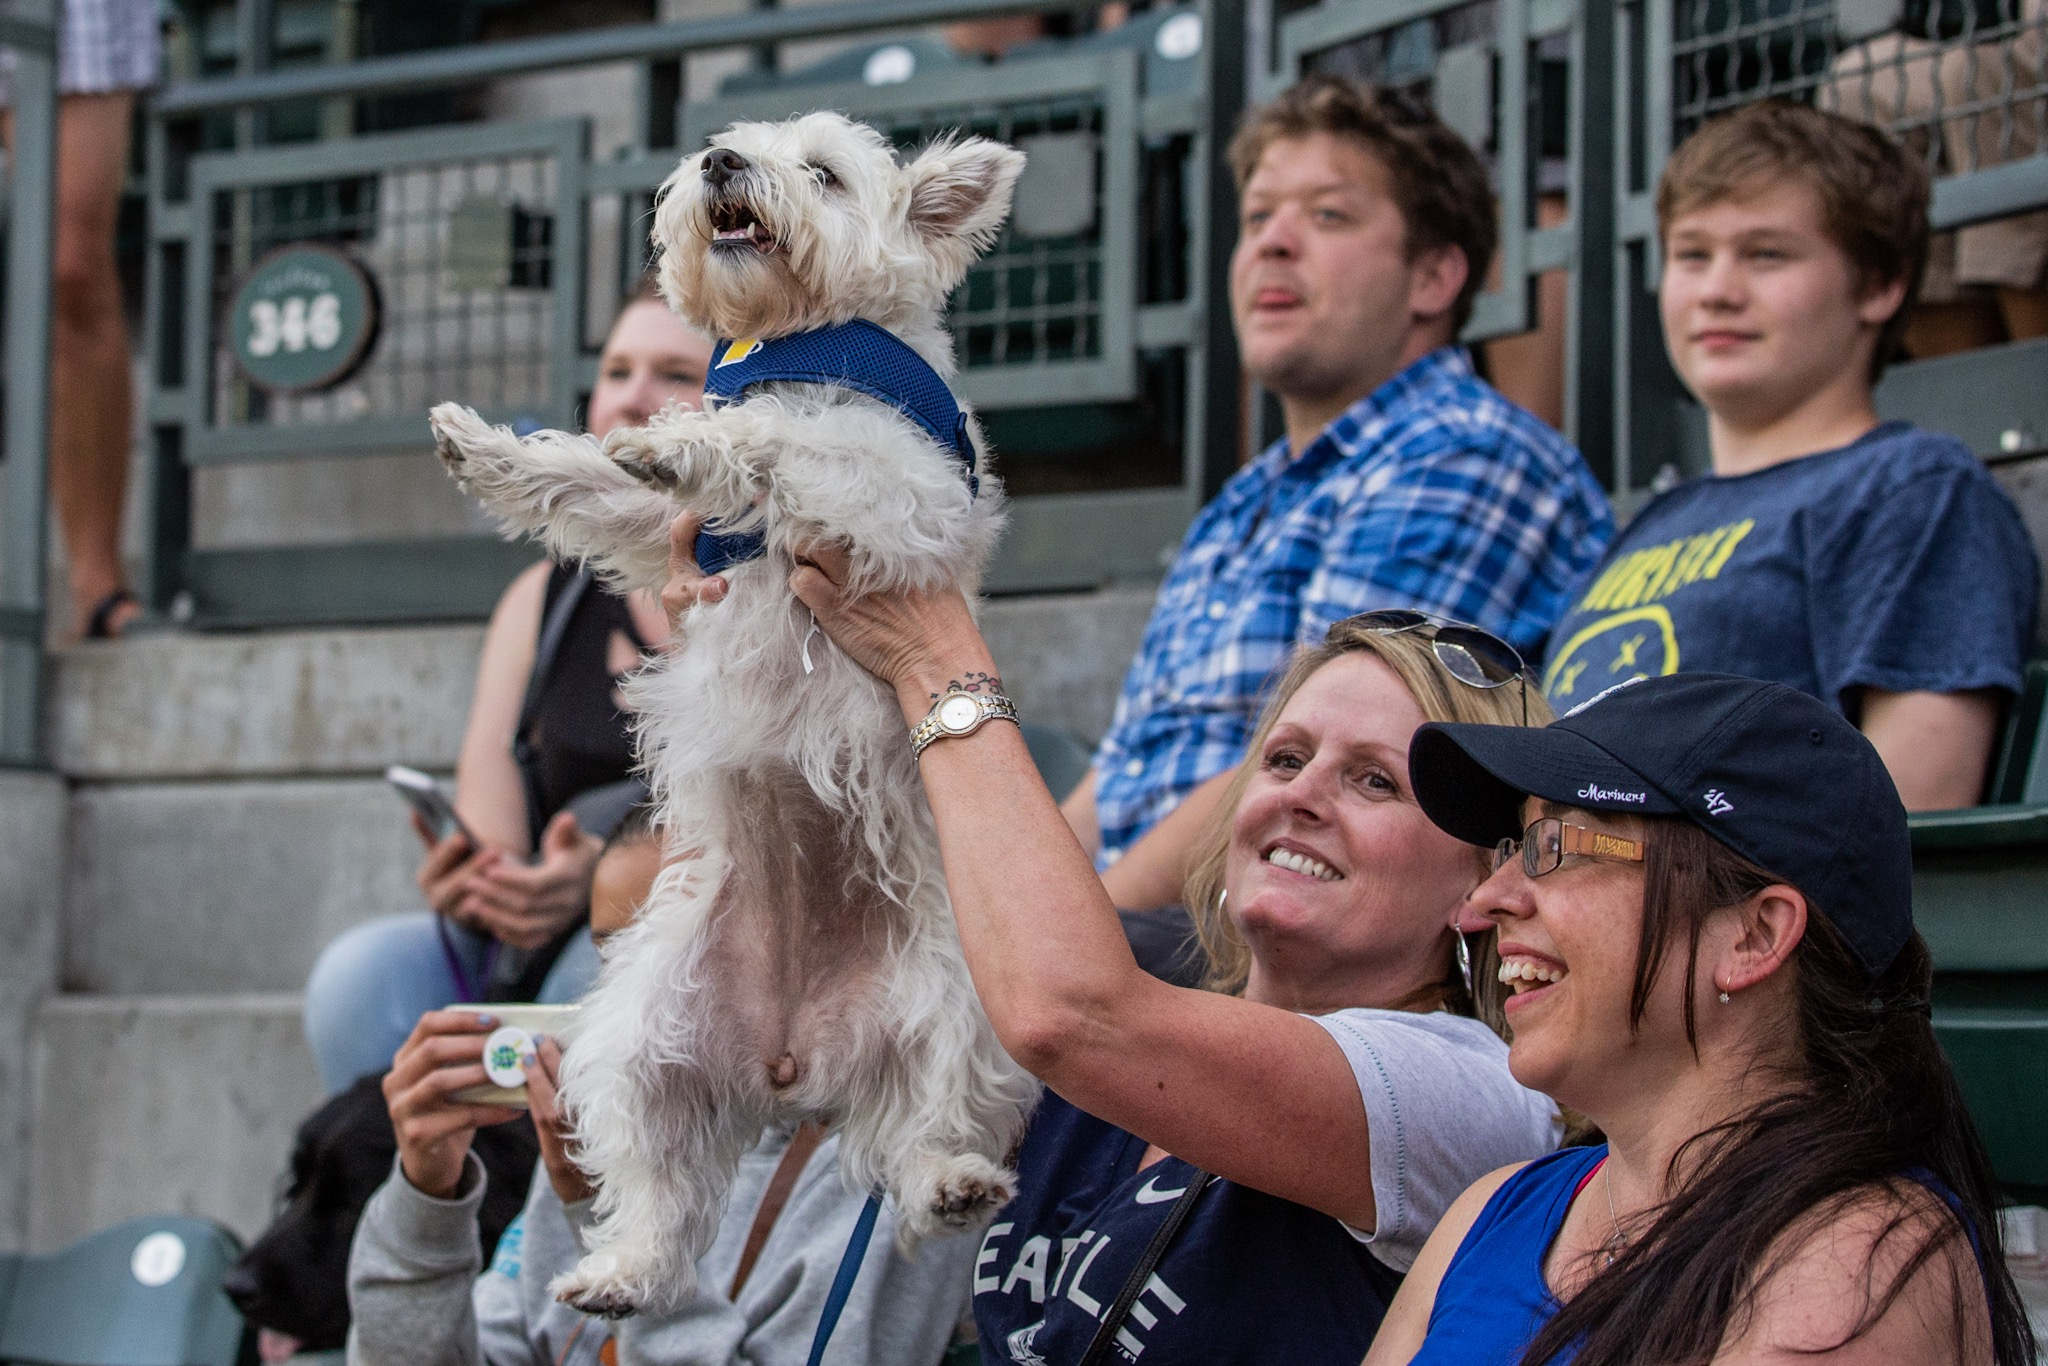 The second 'Bark at the Park' of the season did not disappoint! Mariners fans were allowed to bring their dogs to the game to enjoy the sun, some baseball, and man's best friend. The next Bark at the Park game will be September 5, against the Orioles . (Sunita Martini / Seattle Refined){ }